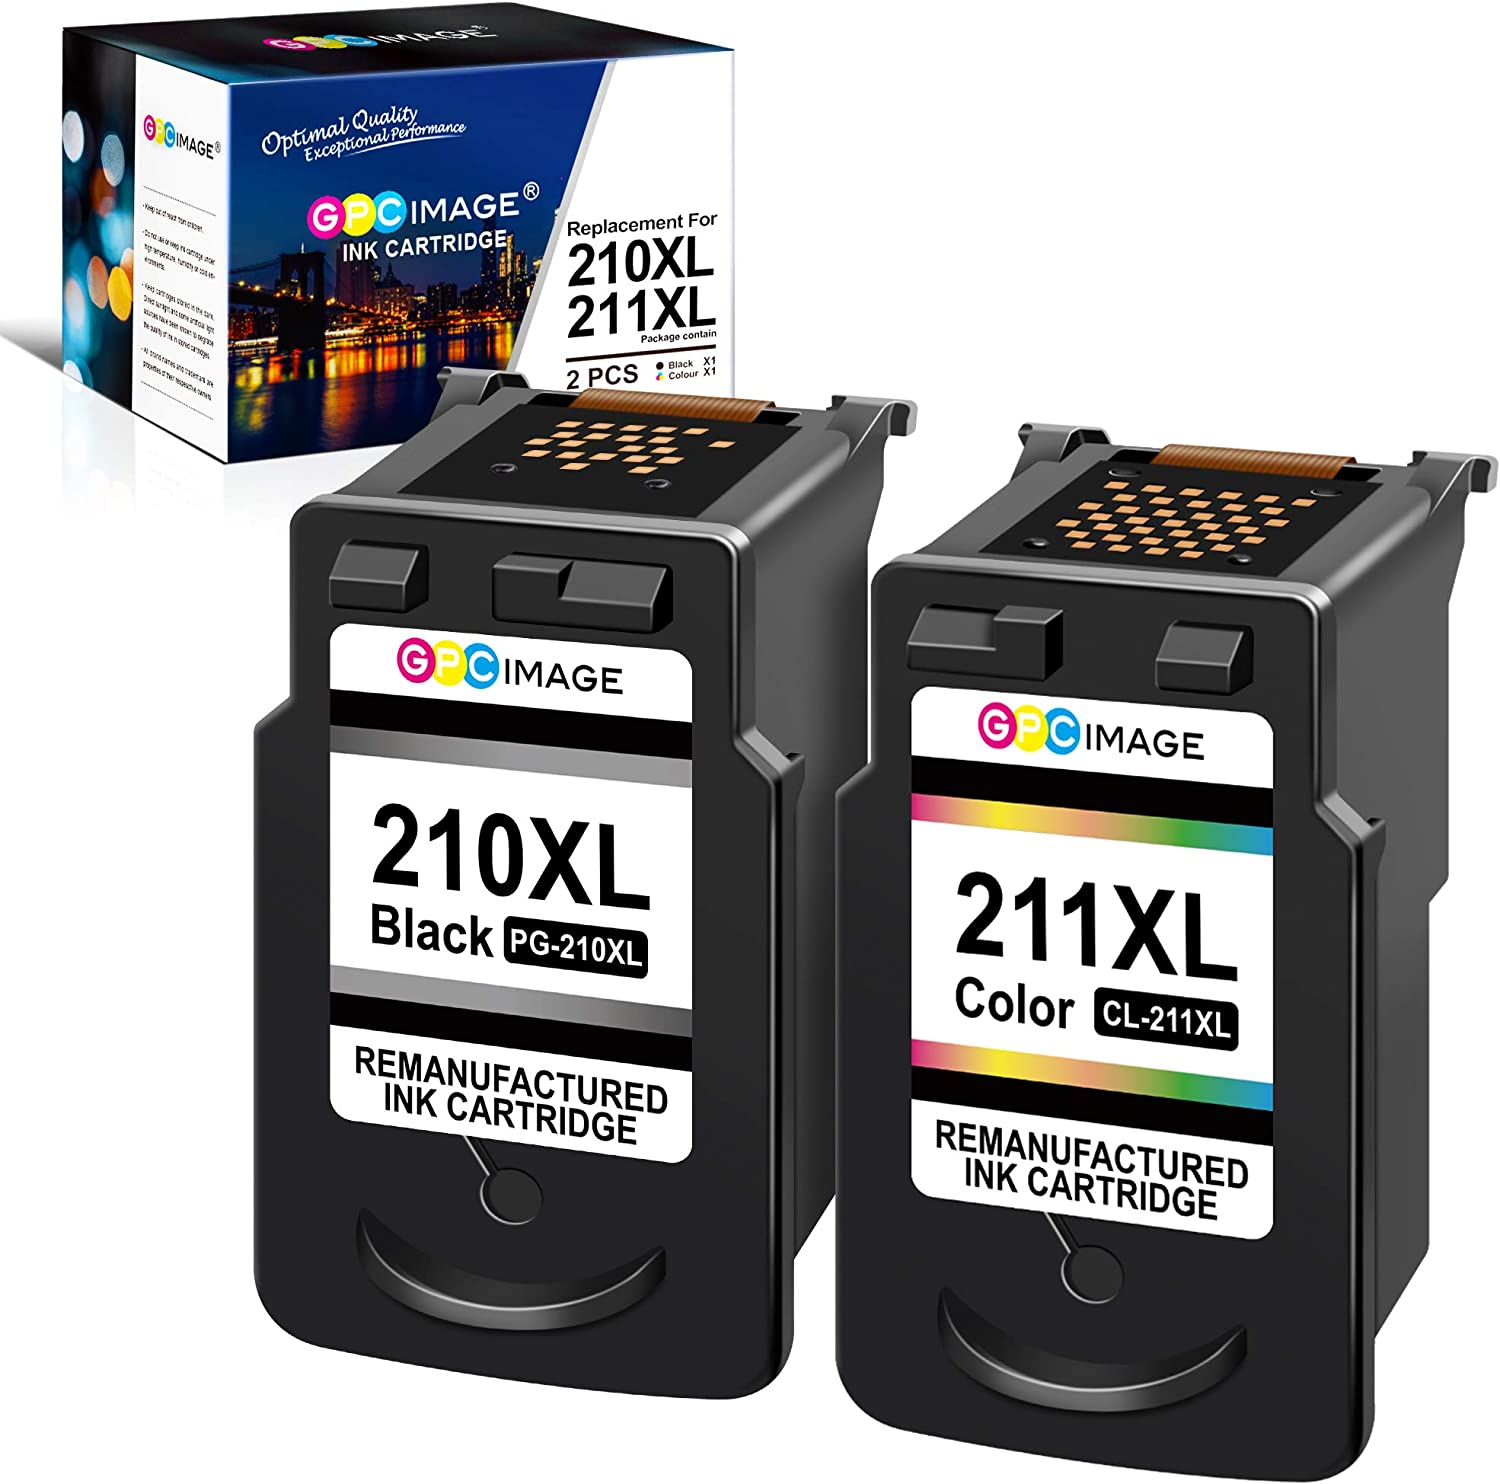 GPC Image Remanufactured Ink Cartridge Replacement for Canon PG-210XL 210XL CL-211XL 211XL to use with PIXMA MP240 MP230 MP480 IP2702 IP2700 MP495 MX420 MX330 MX340 Printer Tray (Black, Tri-Color)